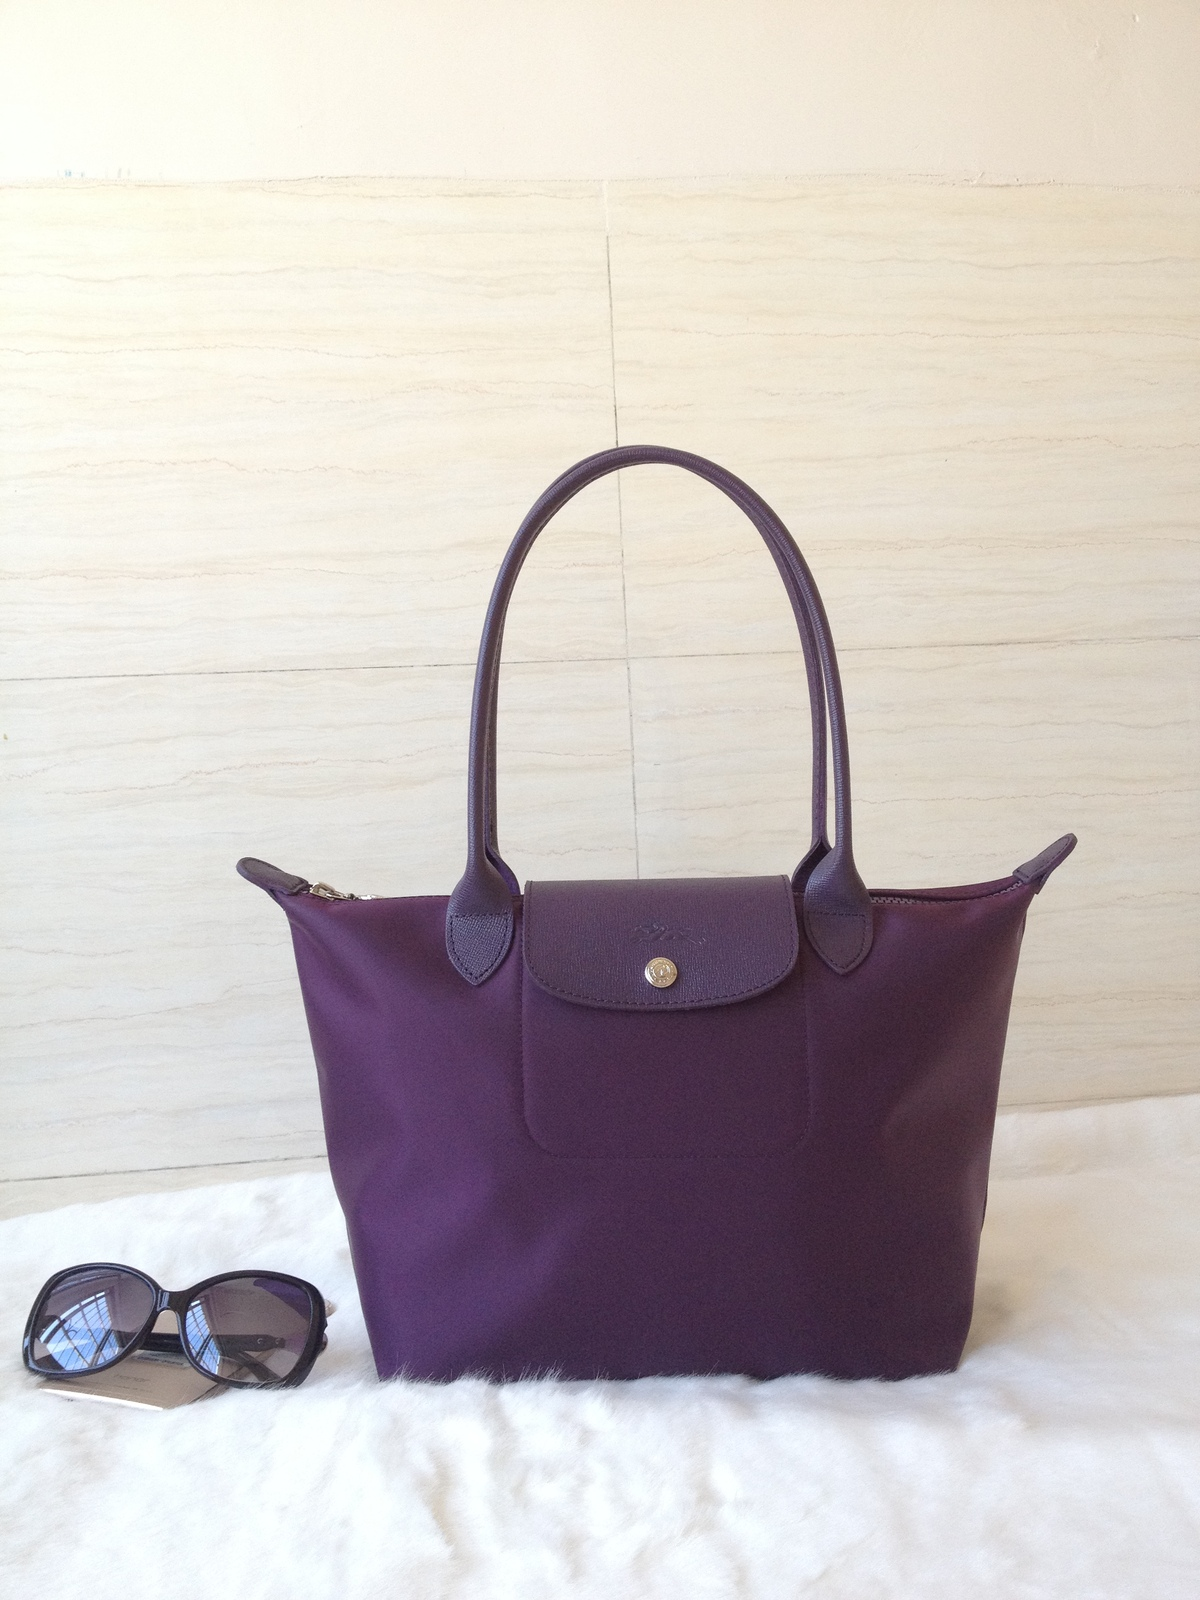 0189a2e28883 Longchamp Le Pliage Neo Small Tote Bag and 27 similar items. Img 6739